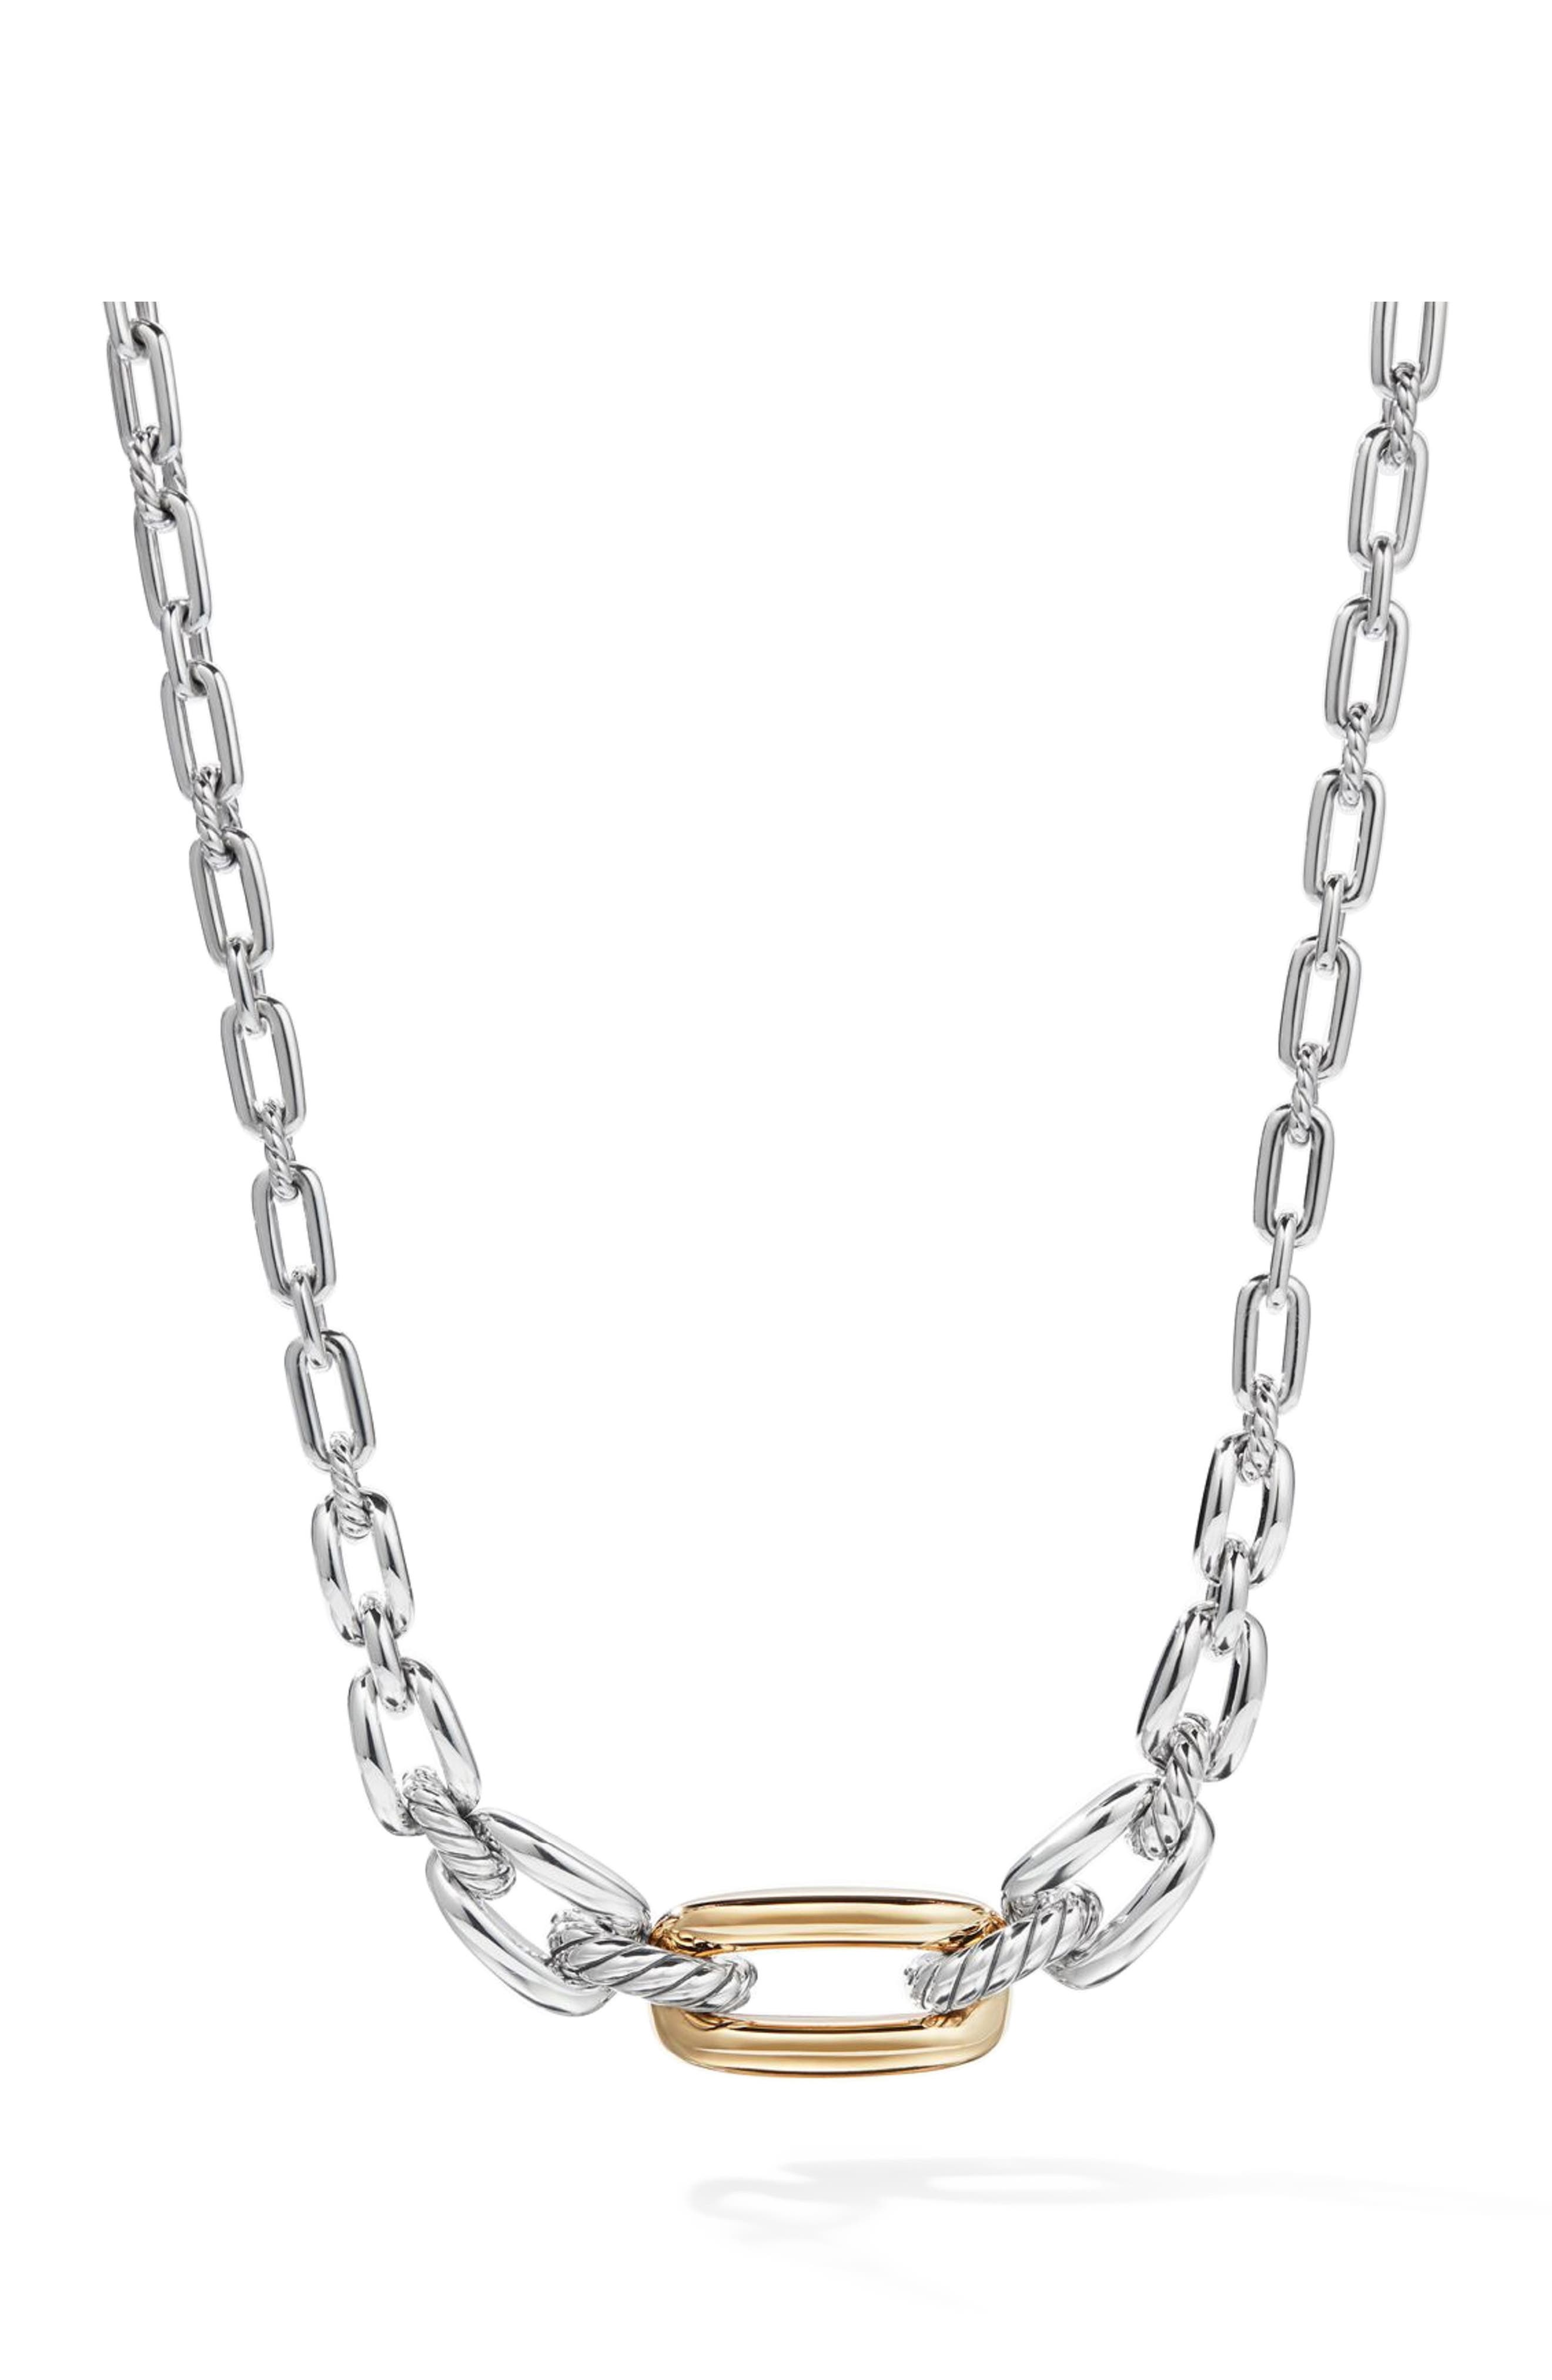 DAVID YURMAN Wellesley Link Short Necklace with 18k Gold, Main, color, 18K YELLOW GOLD/ SILVER